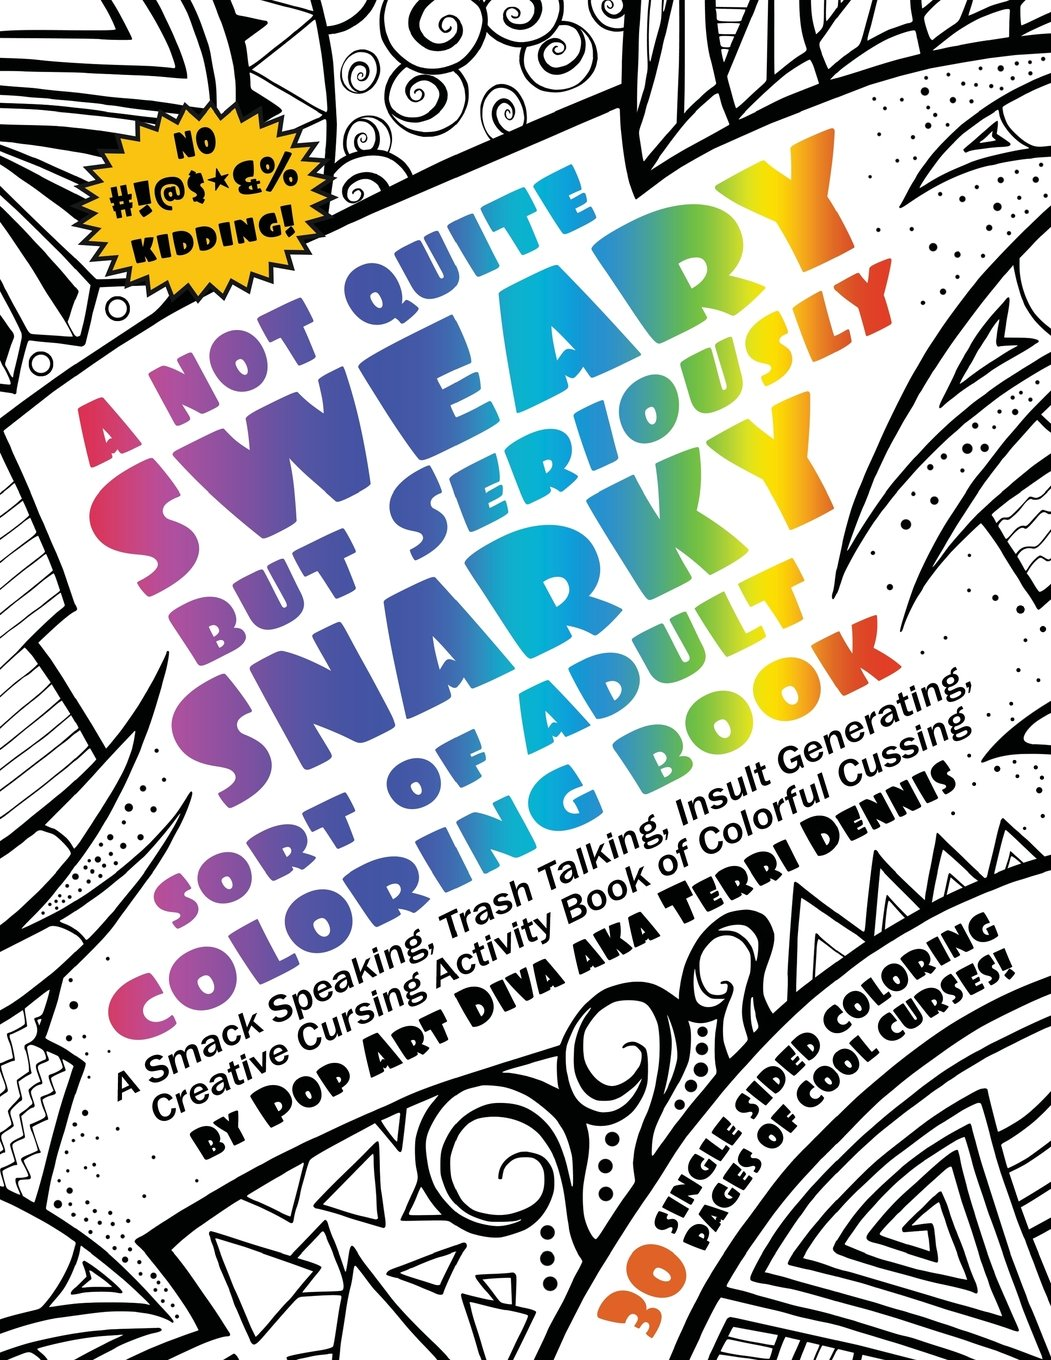 - Amazon.com: Not Quite SWEARY But Seriously SNARKY ADULT SWEAR WORD